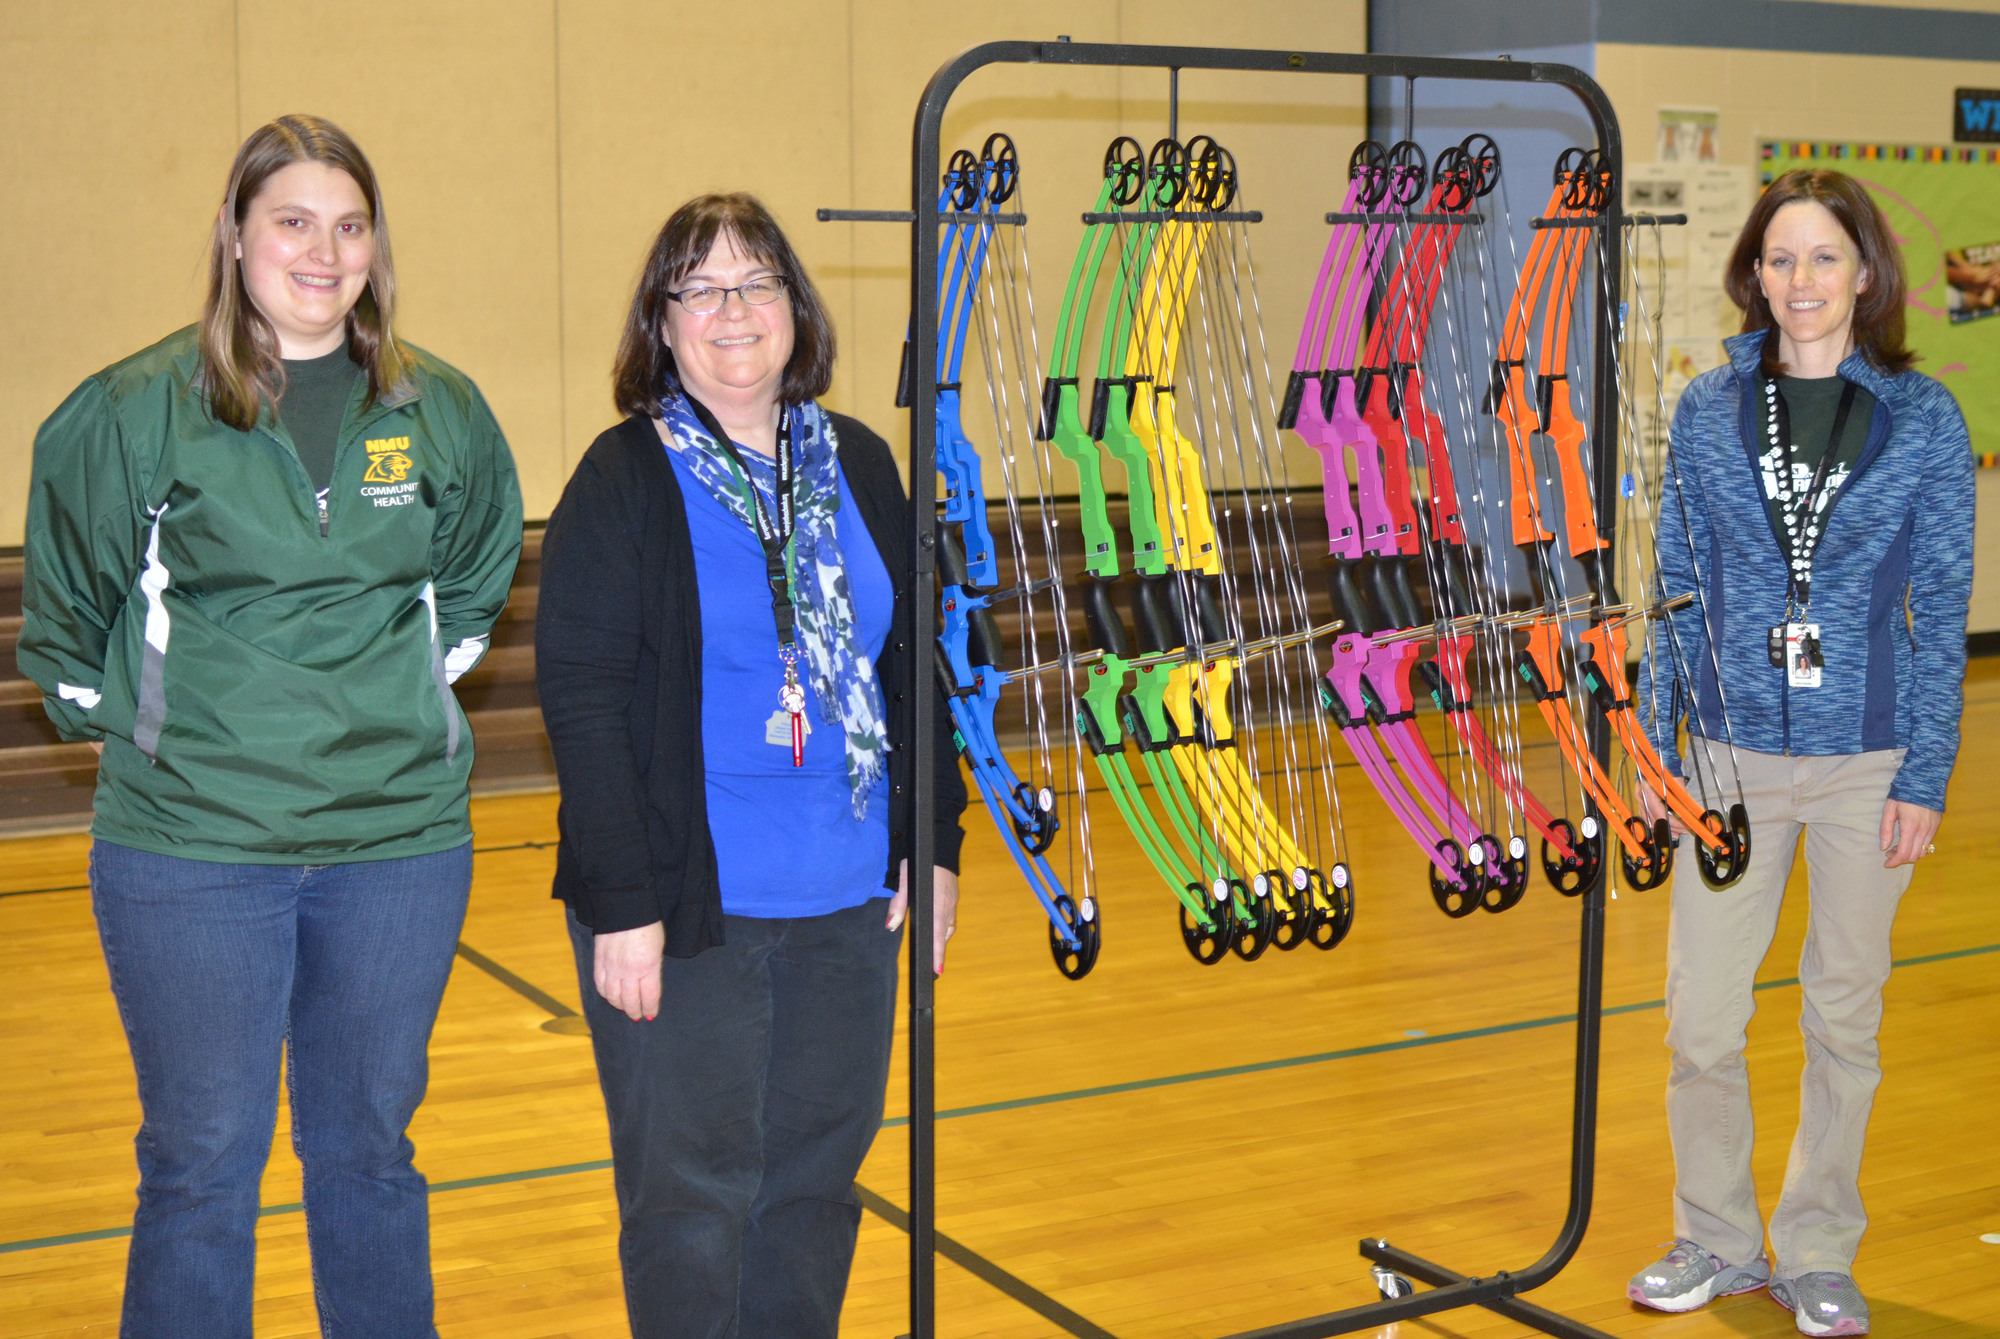 From left, Northern Michigan University senior Casey DeVooght and Cherry Creek Elementary School teachers Mary Bengry and Kathryn Weycker.